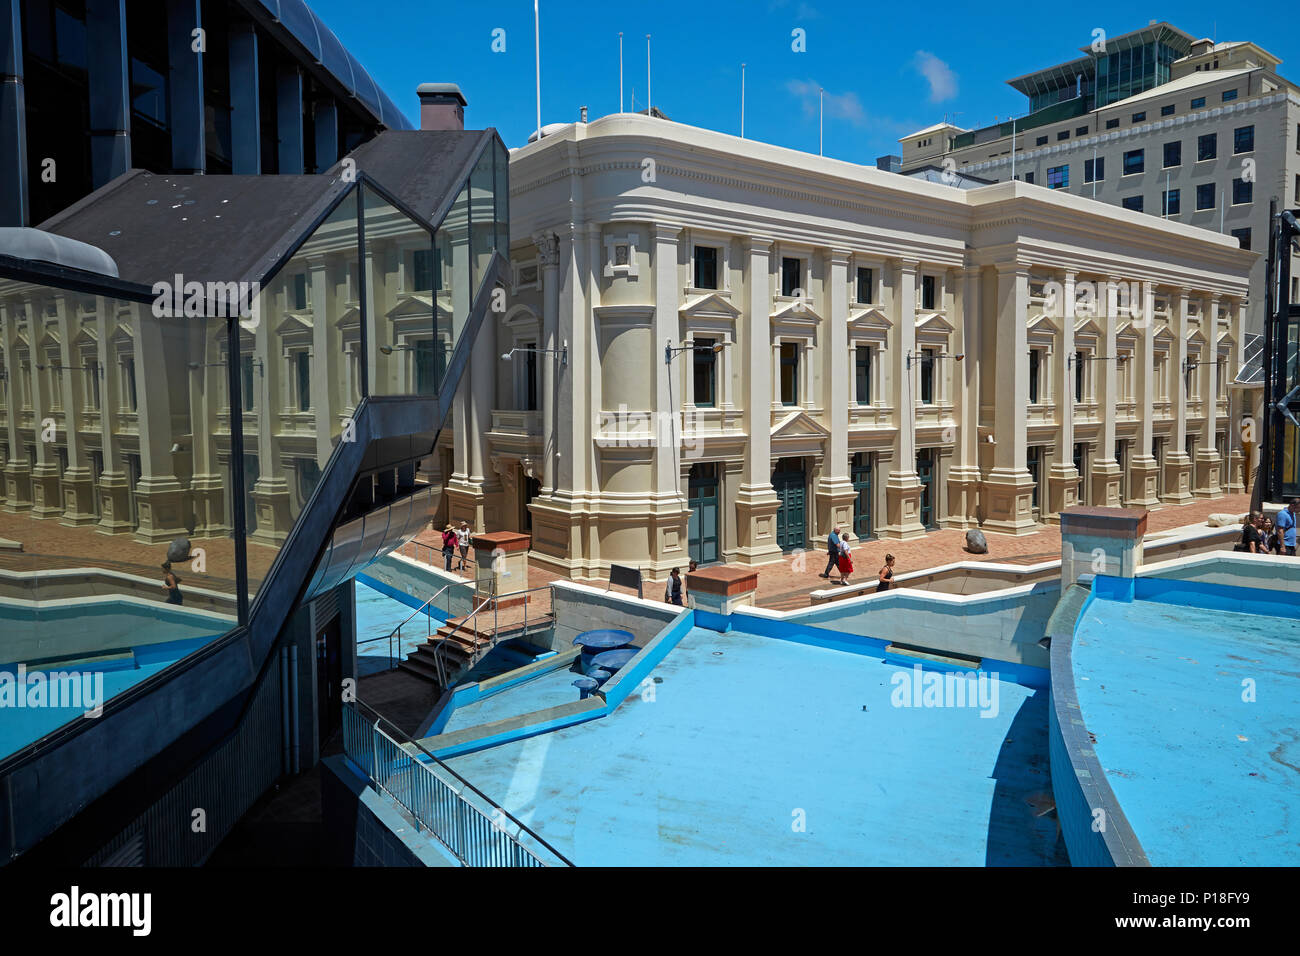 Wellington Town Hall, water feature, and reflection in Michael Fowler Centre, Civic Square, Wellington, North Island, New Zealand - Stock Image